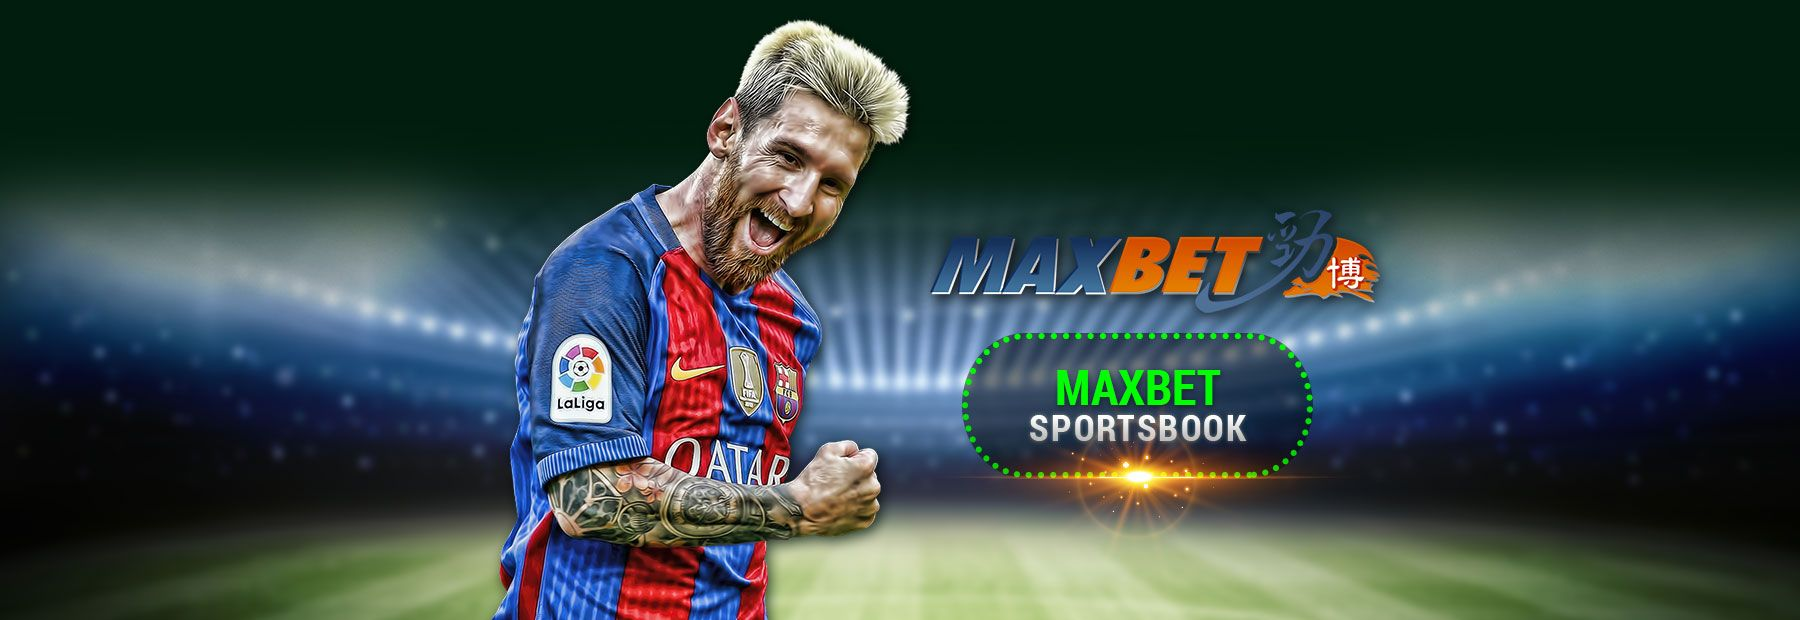 maxbet | Sports betting, Different sports, Sports